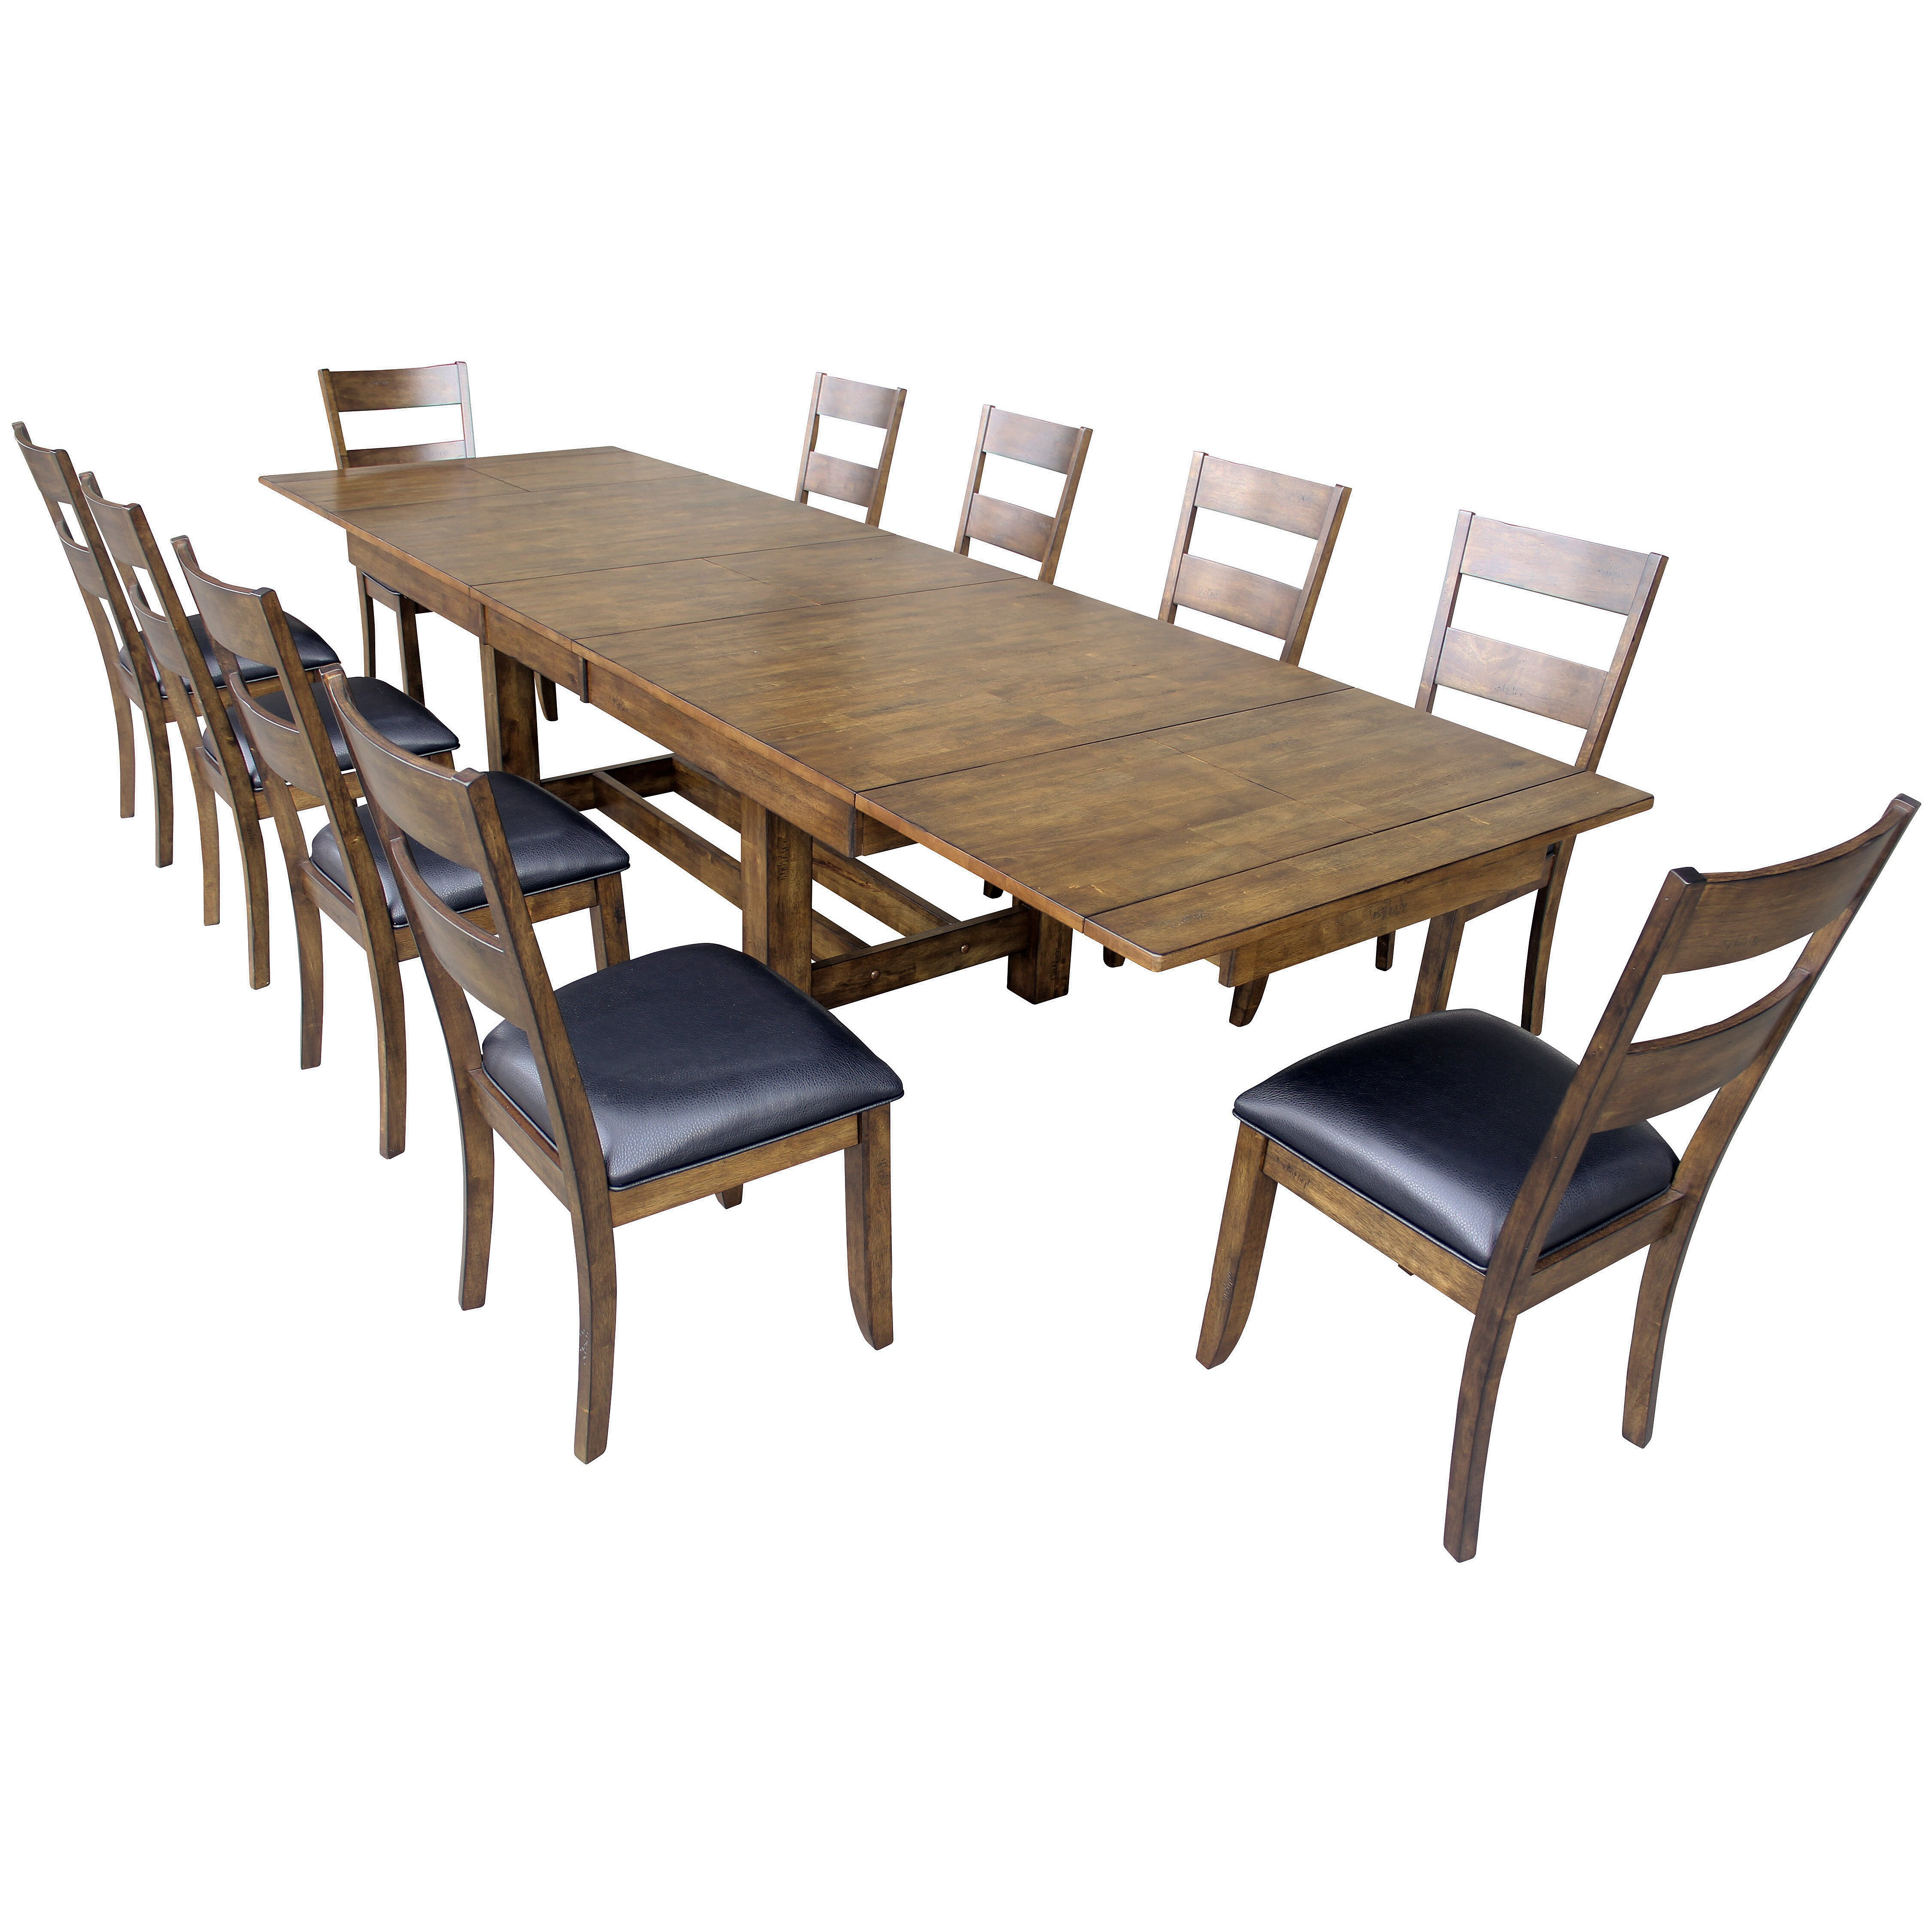 11 Piece Dining Room Set Furniture 4692dtbc9 Park Avenue 9 Piece Dining Set In Dark Cherry